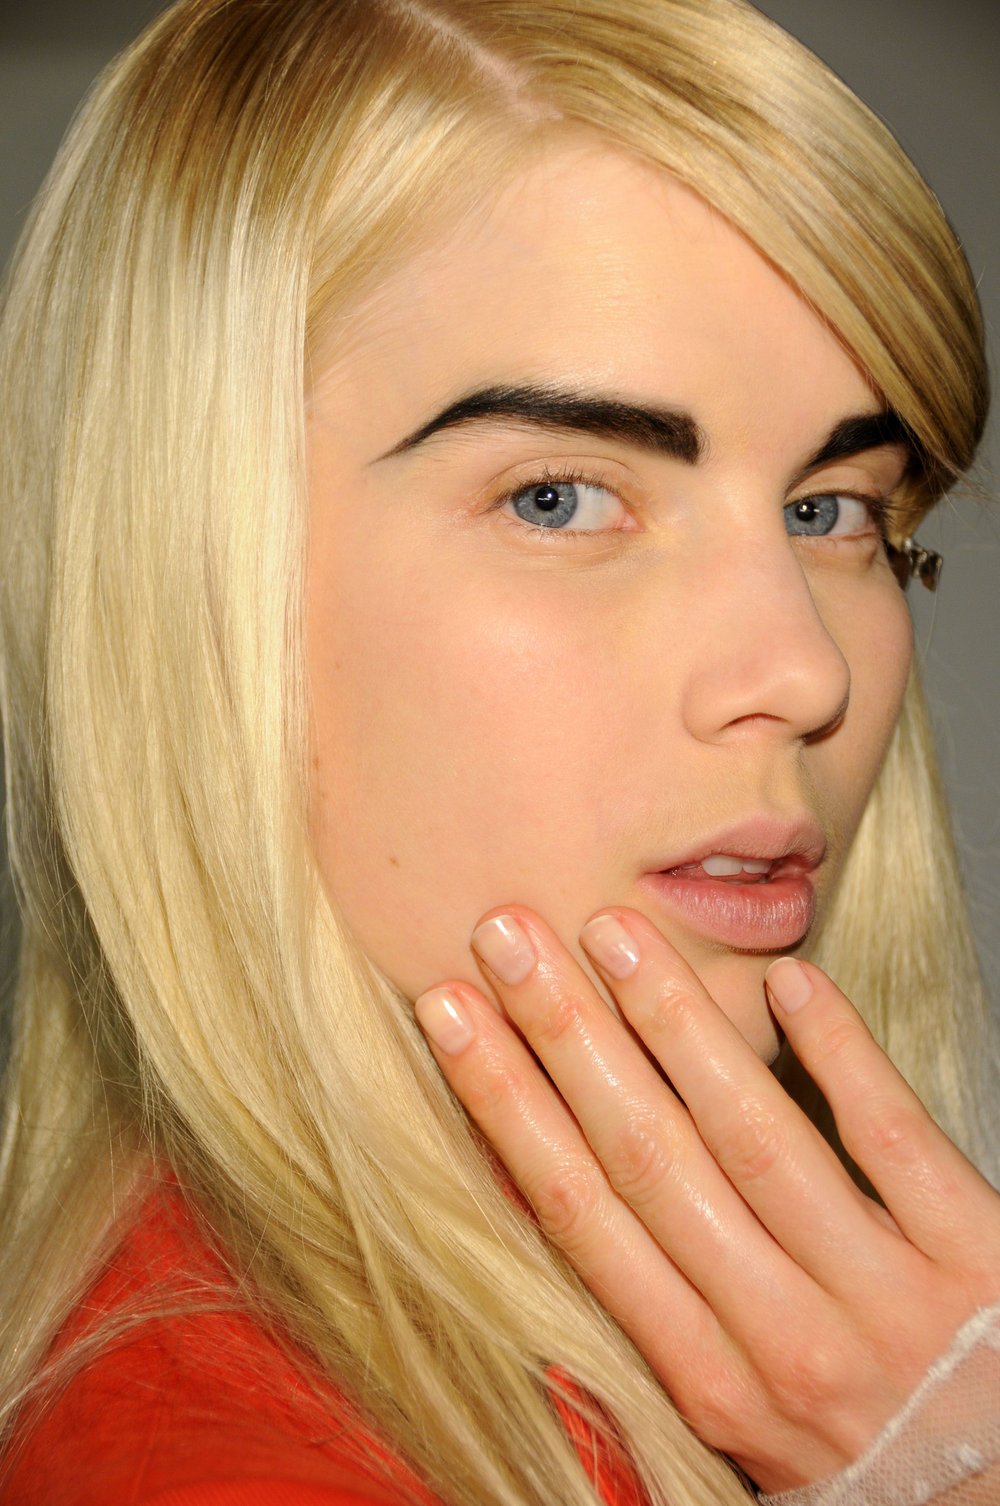 <p>At the Altuzarra show, nail tech Candice Manacchio and the <strong>CND</strong> team used Putty topped with Super Matte Top Coat to juxtapose dramatic, black eyebrows and stick-straight hair.</p> <p><em>Photo courtesy of Creative Nail Design (CND)</em></p>